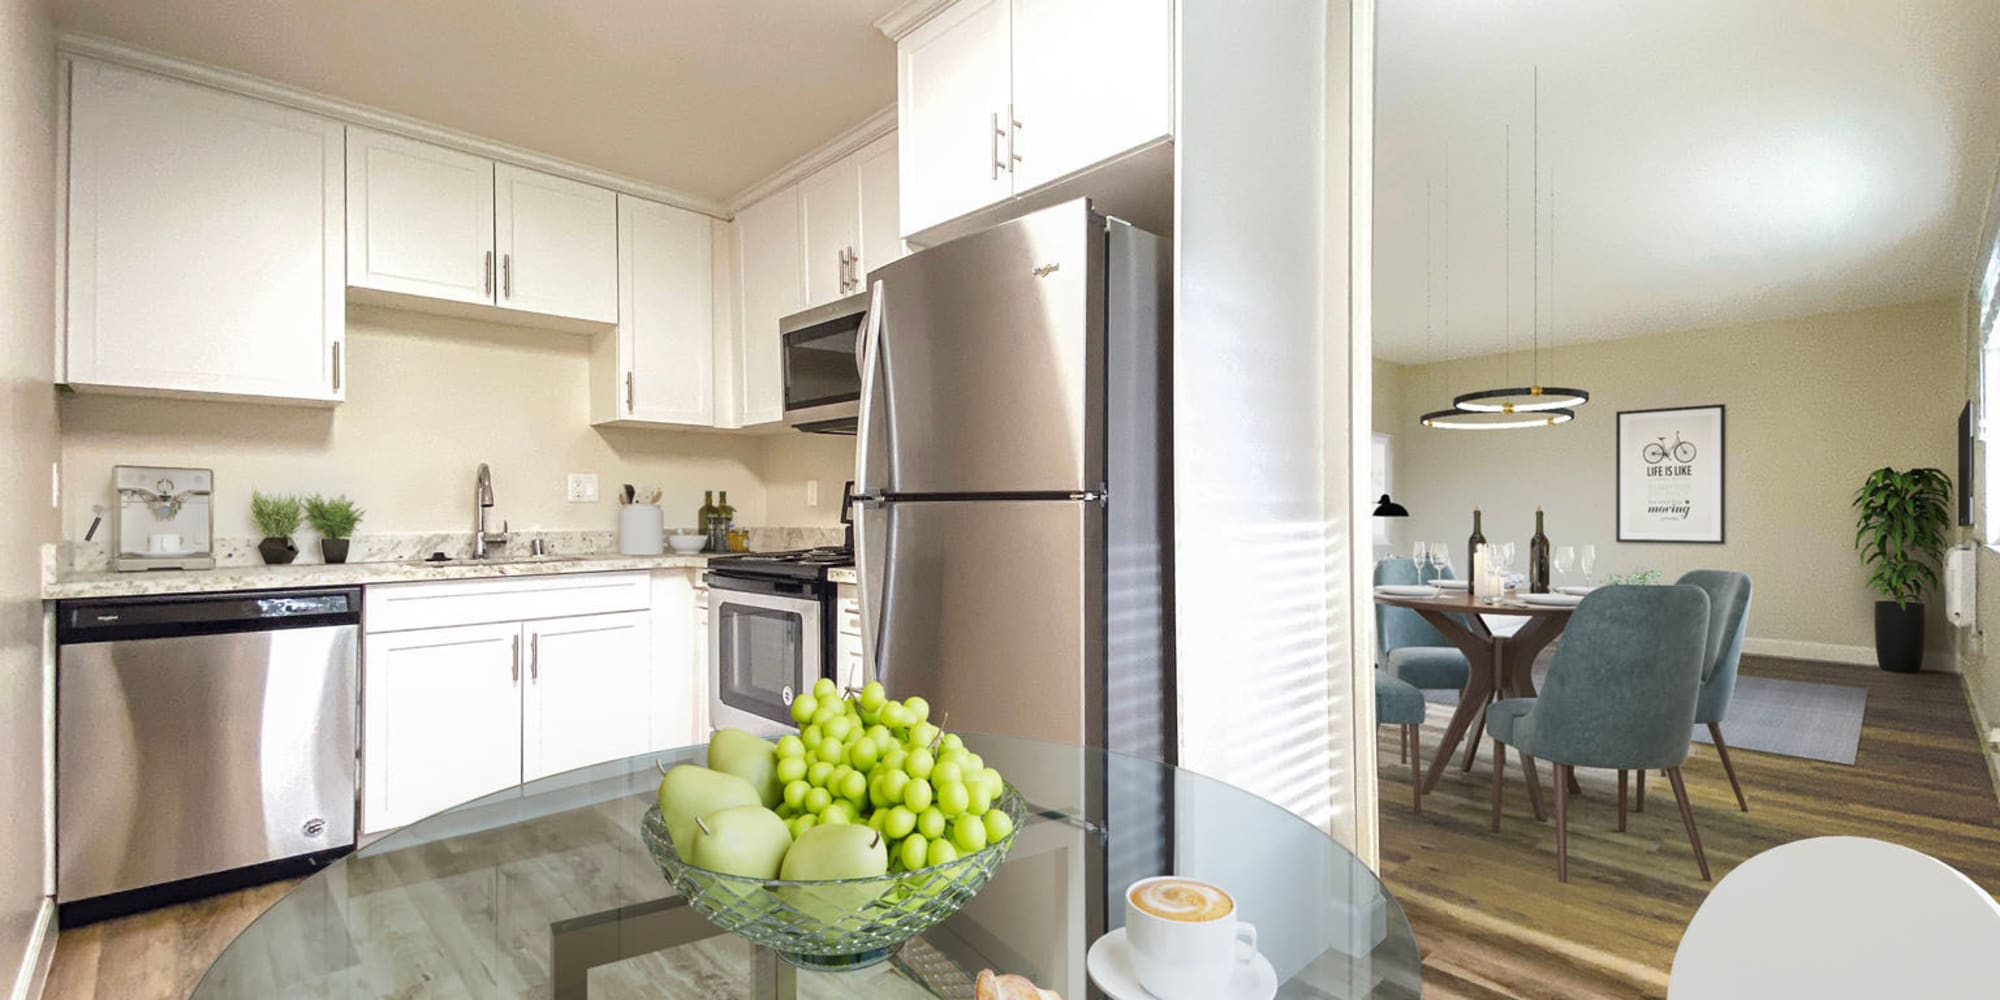 Stainless-steel appliances and hardwood flooring in a model home's kitchen at Pleasanton Heights in Pleasanton, California